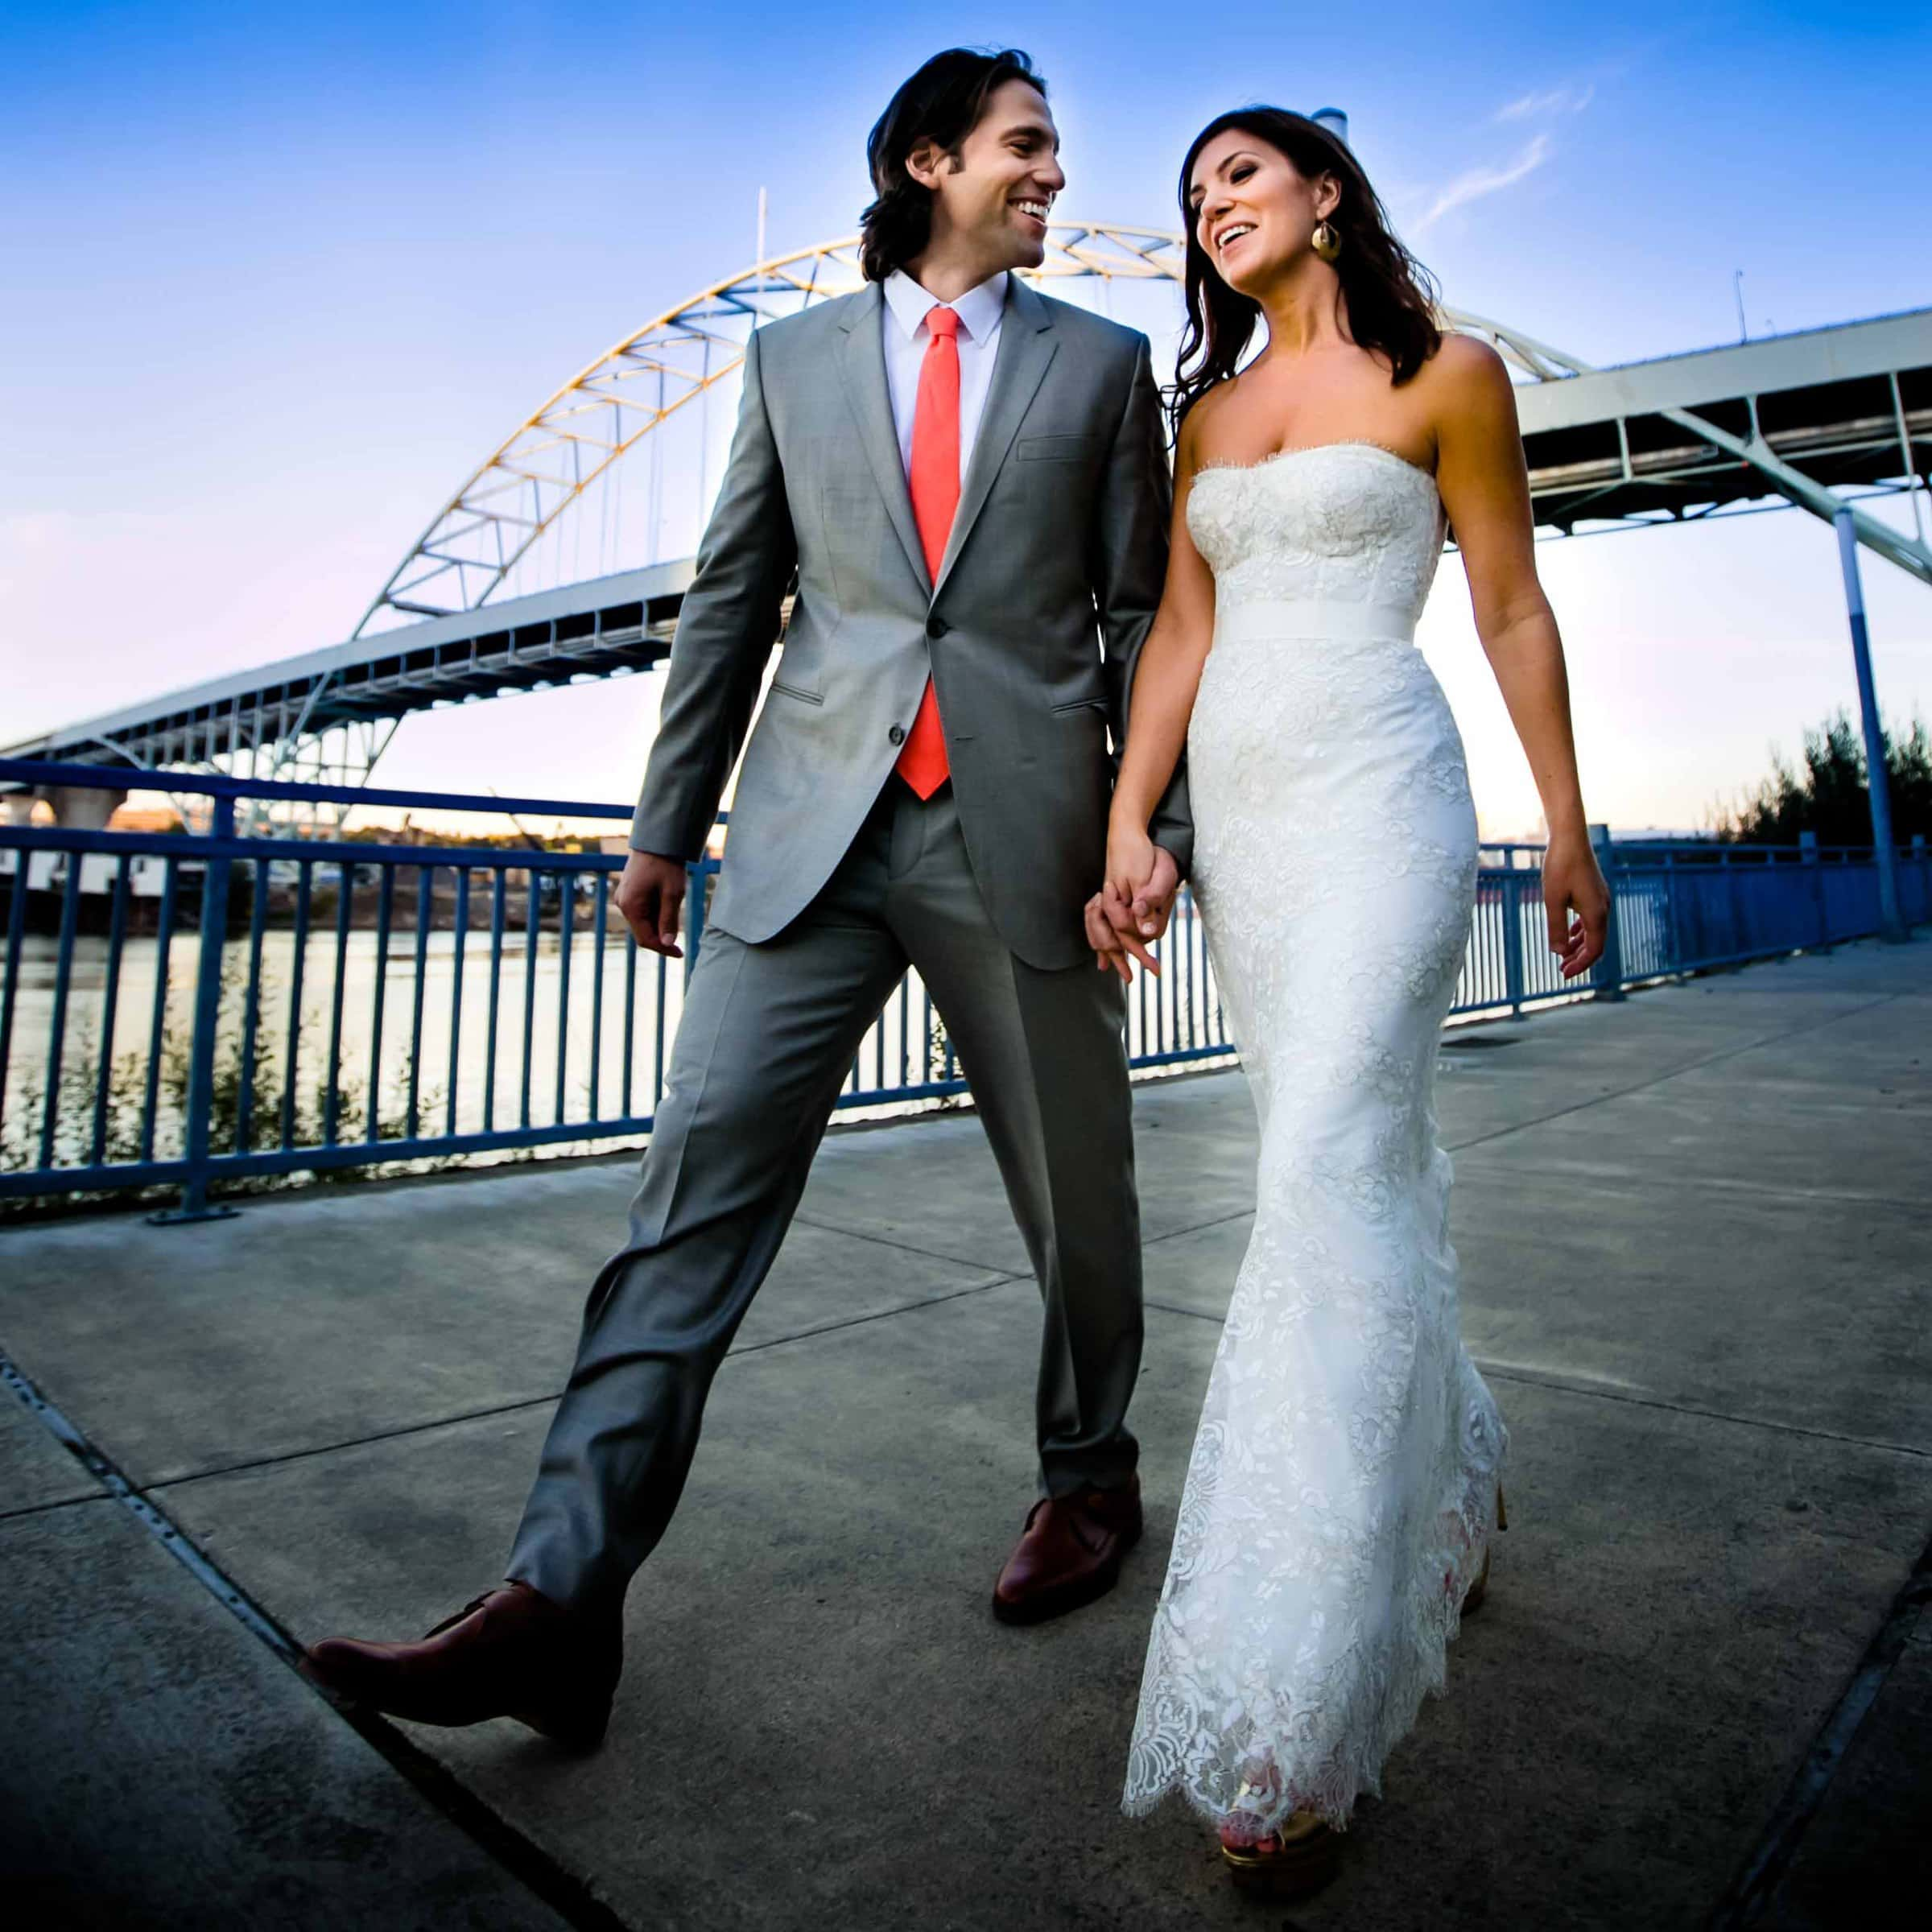 A fun and scenic photo of a bride and groom walking hand and hand underneath the 405 bridge during their Portland wedding celebration